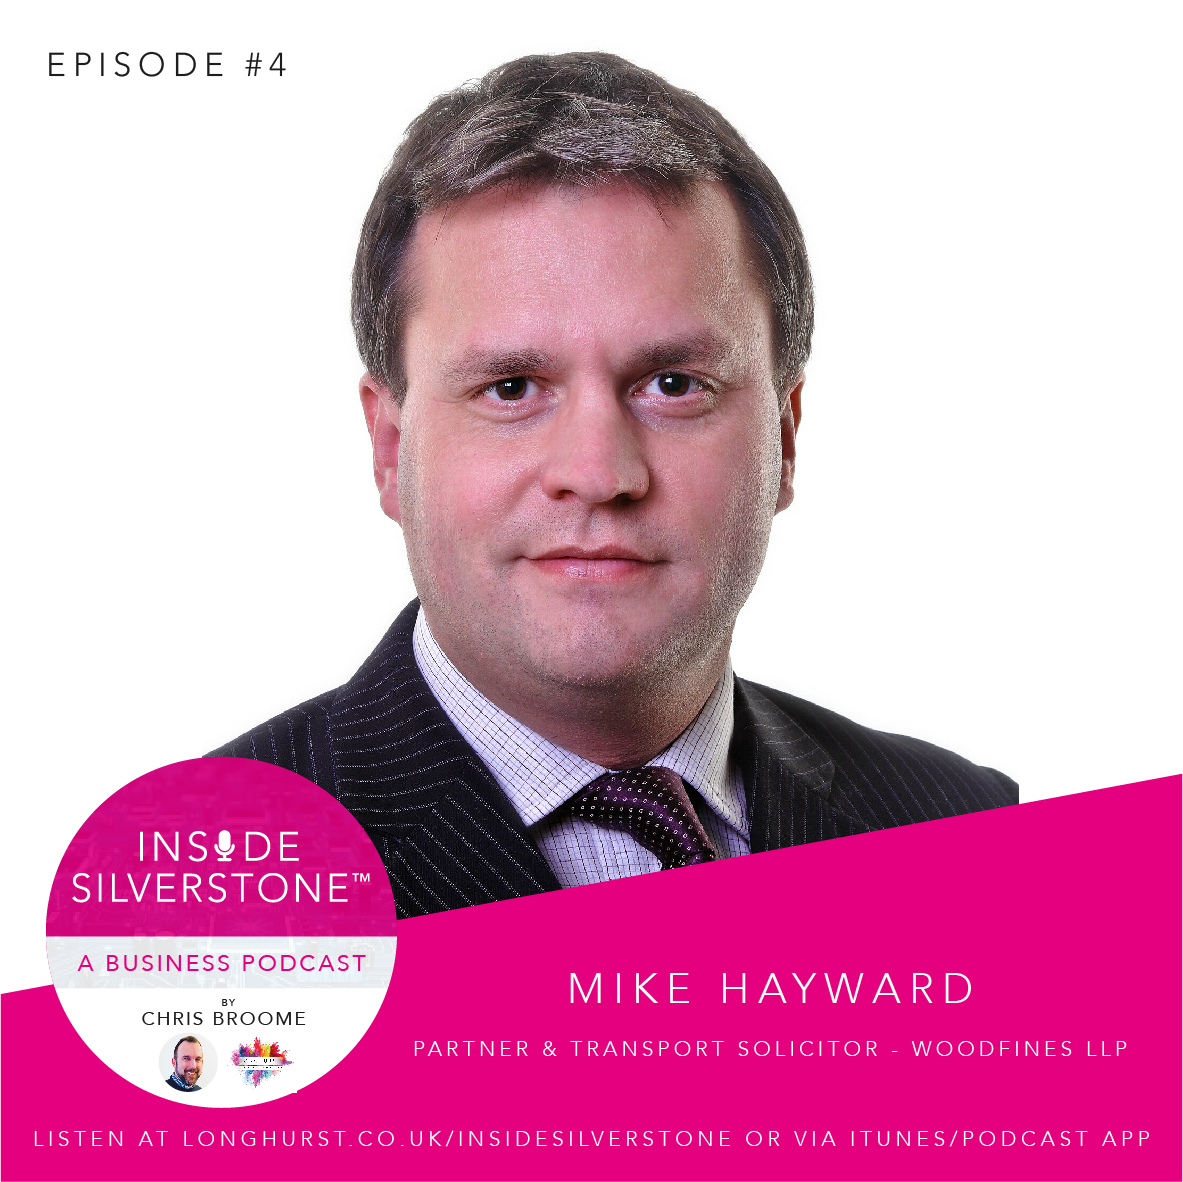 Mike Hayward, Partner, Transport & Regulatory solicitor, at Woodfines LLP